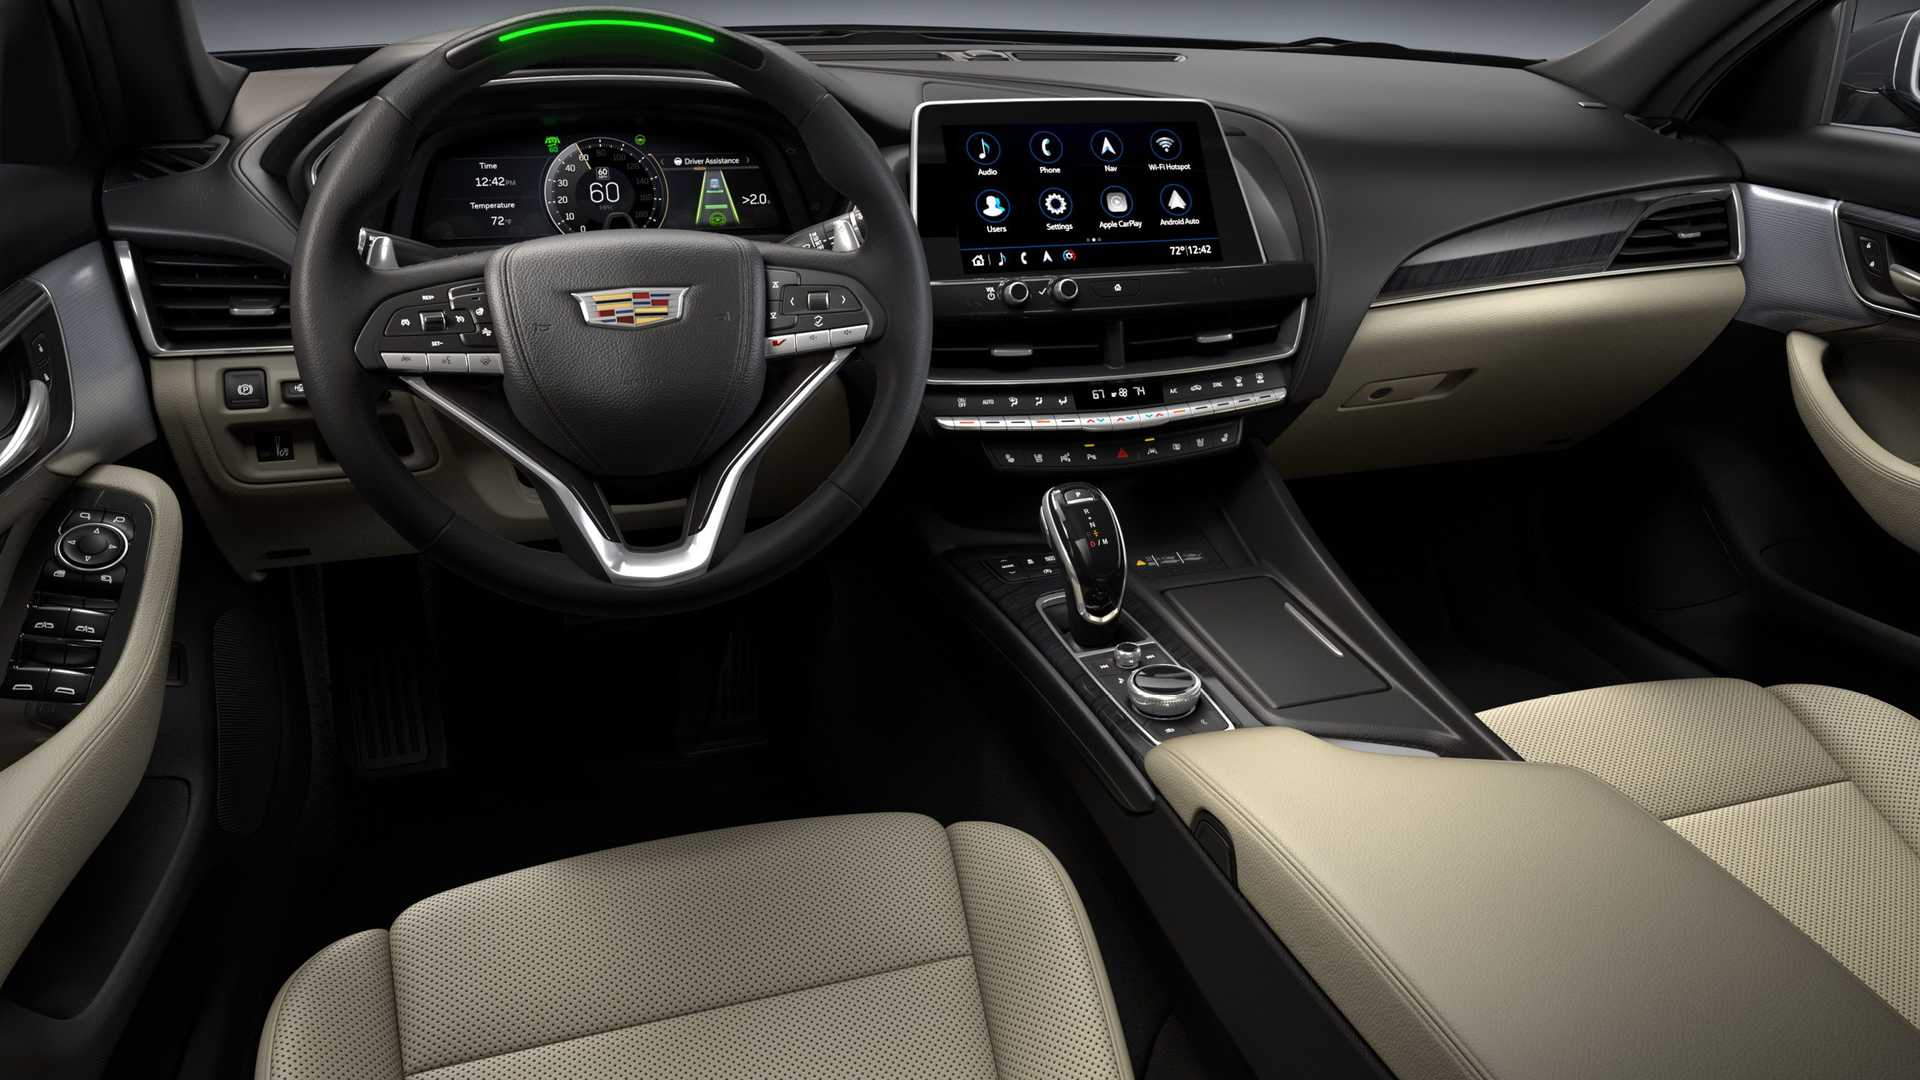 2021 Salon Cadillac CT5-V